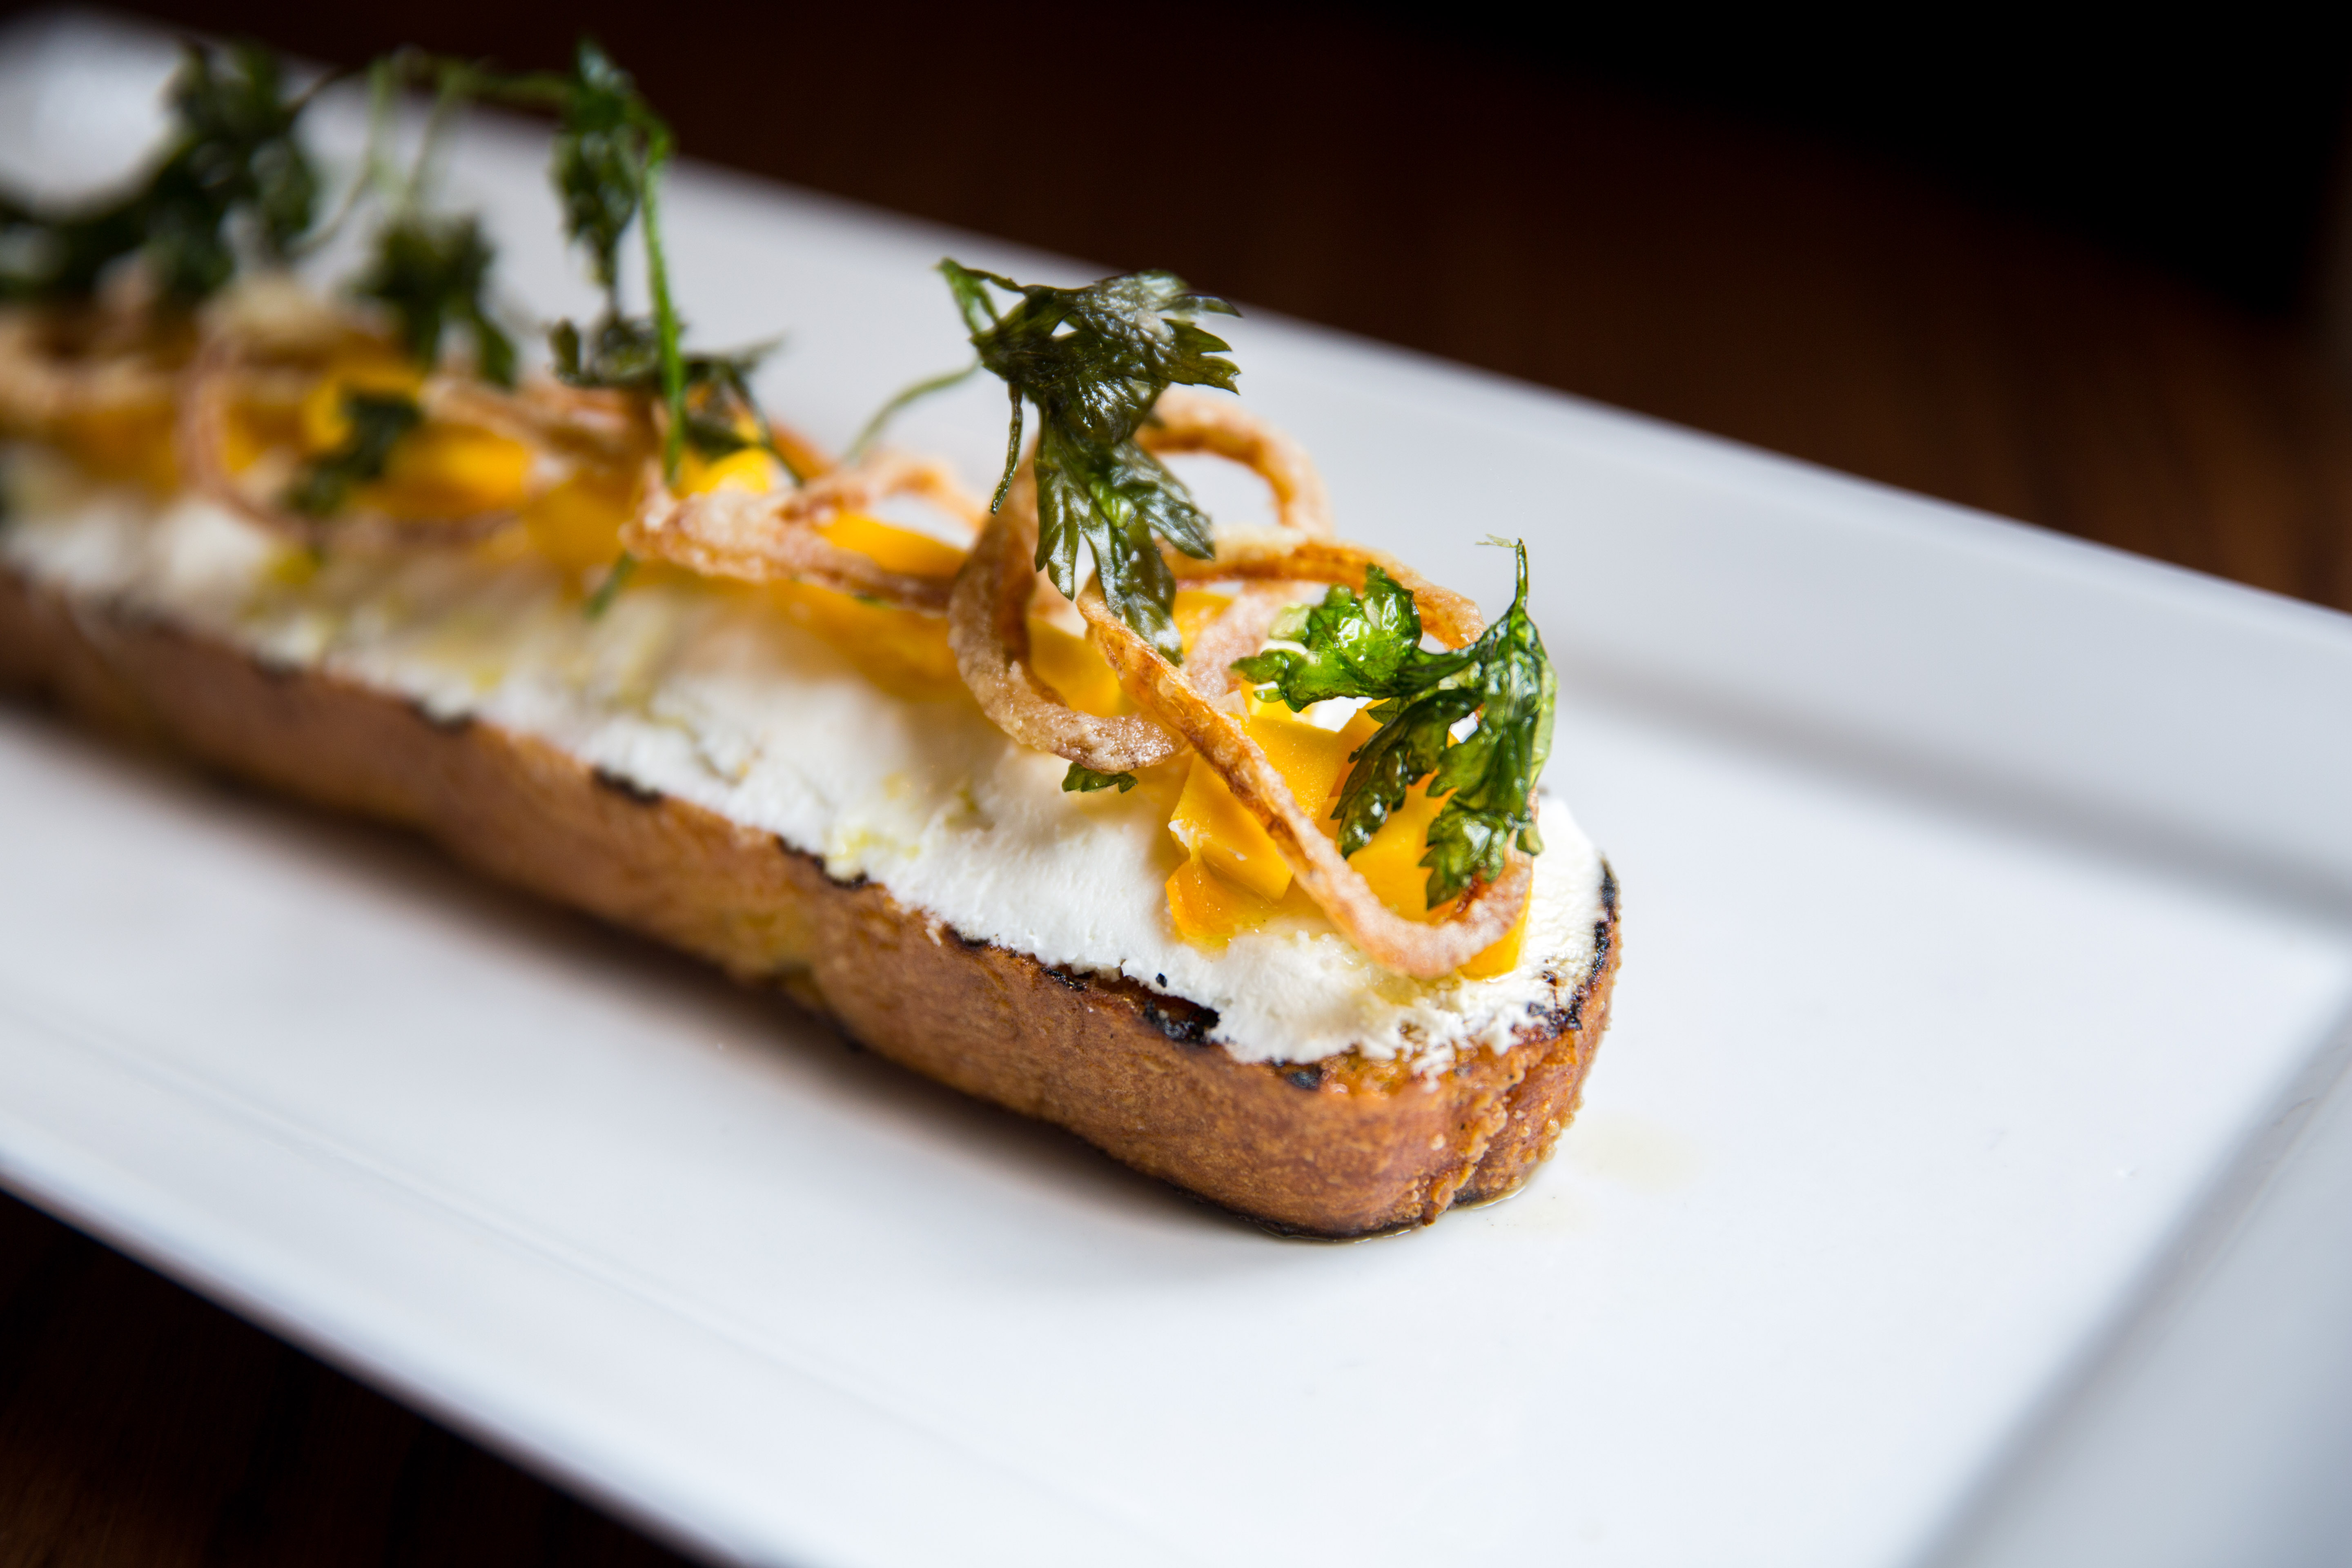 <p>Pumpkin Bruschetta, grilled ciabatta goat cheese, sweet & sour pumpkin fried shallots, parsley.{&nbsp;} You can find these amazing pumpkin items at Tulio until October 31! (Image: Adela Lee).</p>